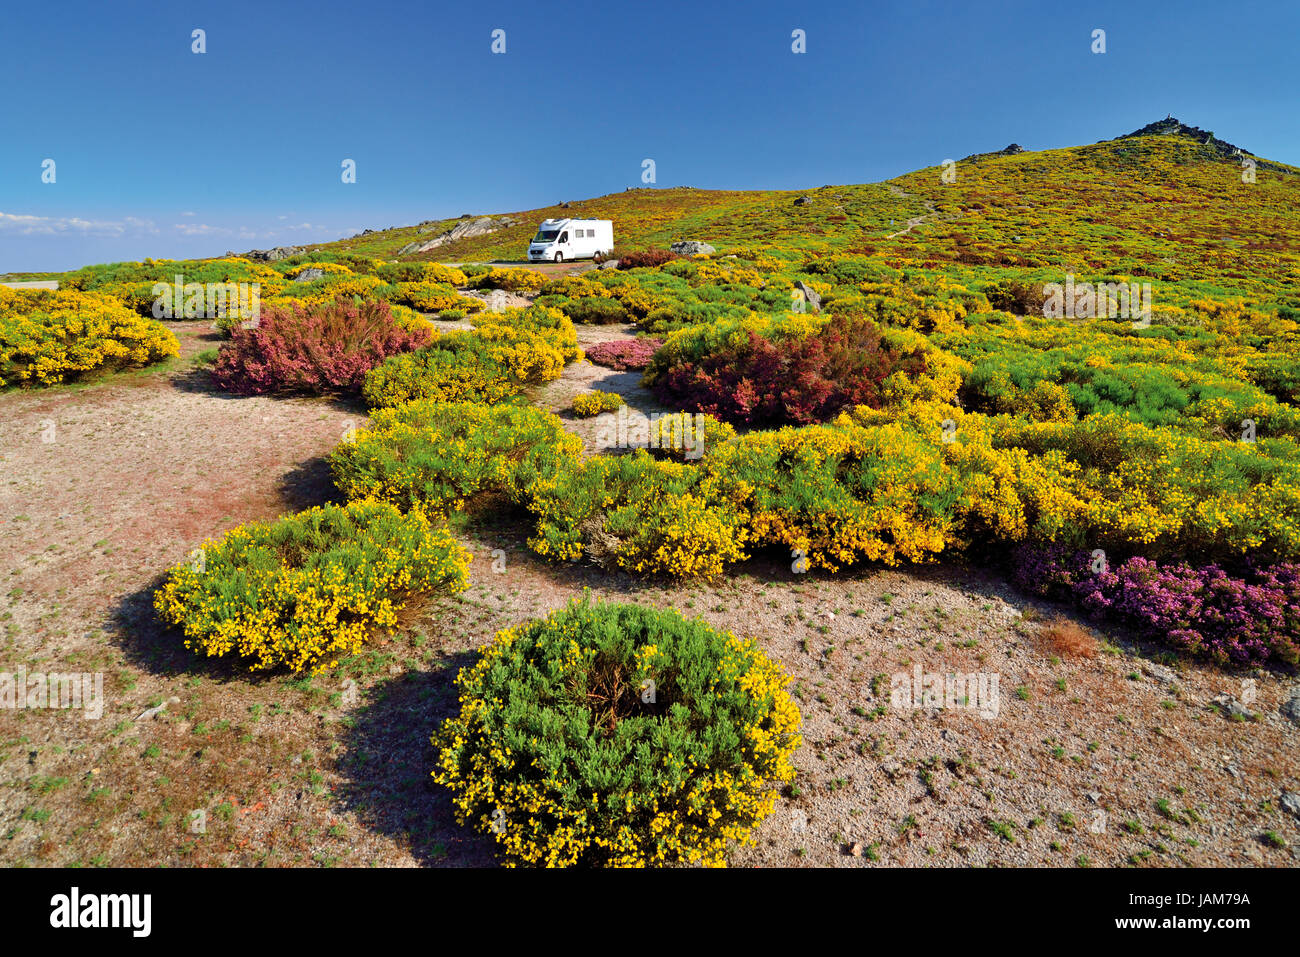 Motorhome alone in the middle of green mountain vegetation with yellow and violett flowers in blossom - Stock Image